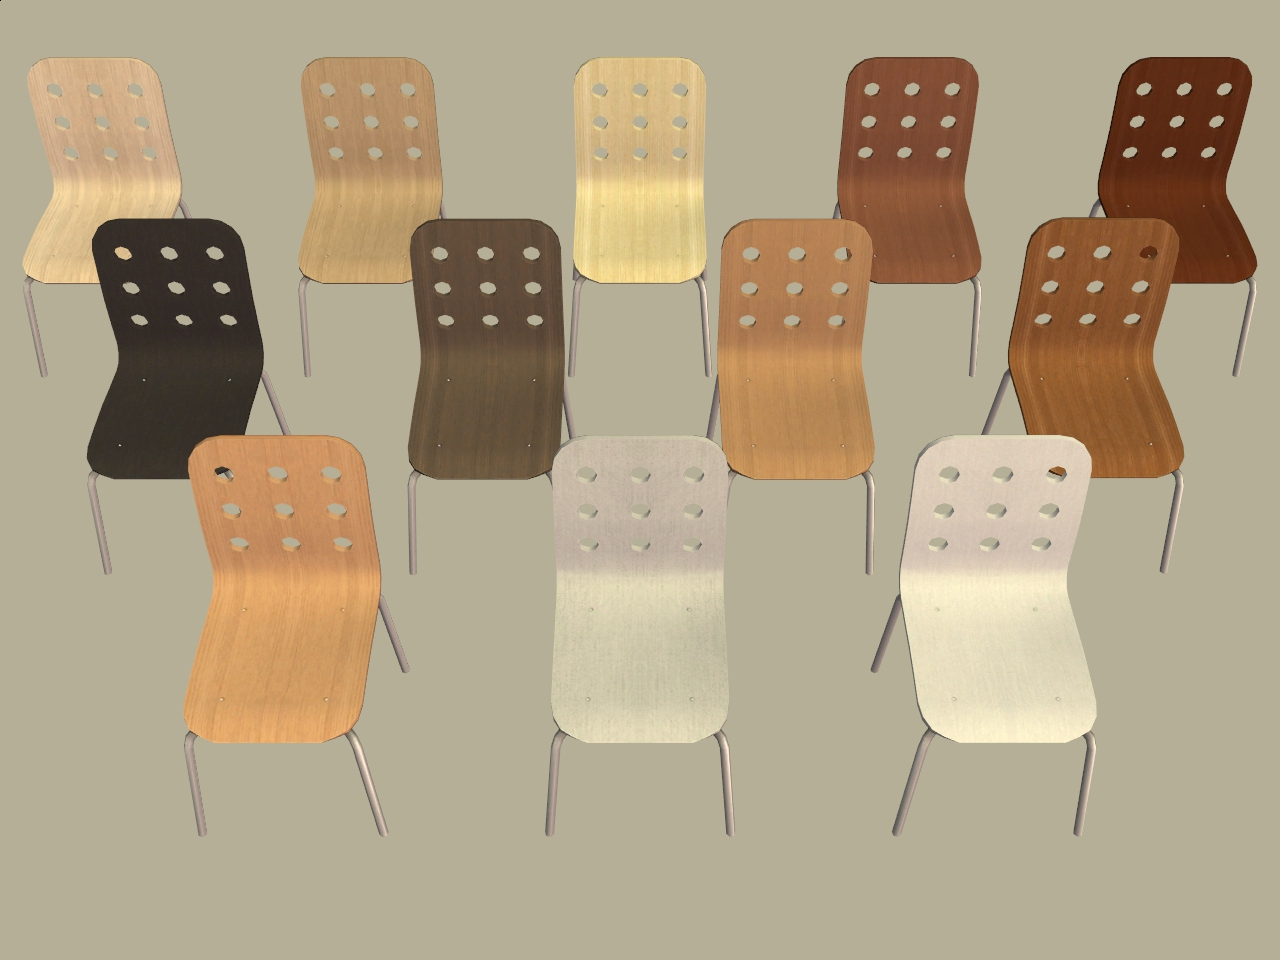 ikea jules chair modern salon styling chairs mod the sims 58 recolours of 39jules visitors